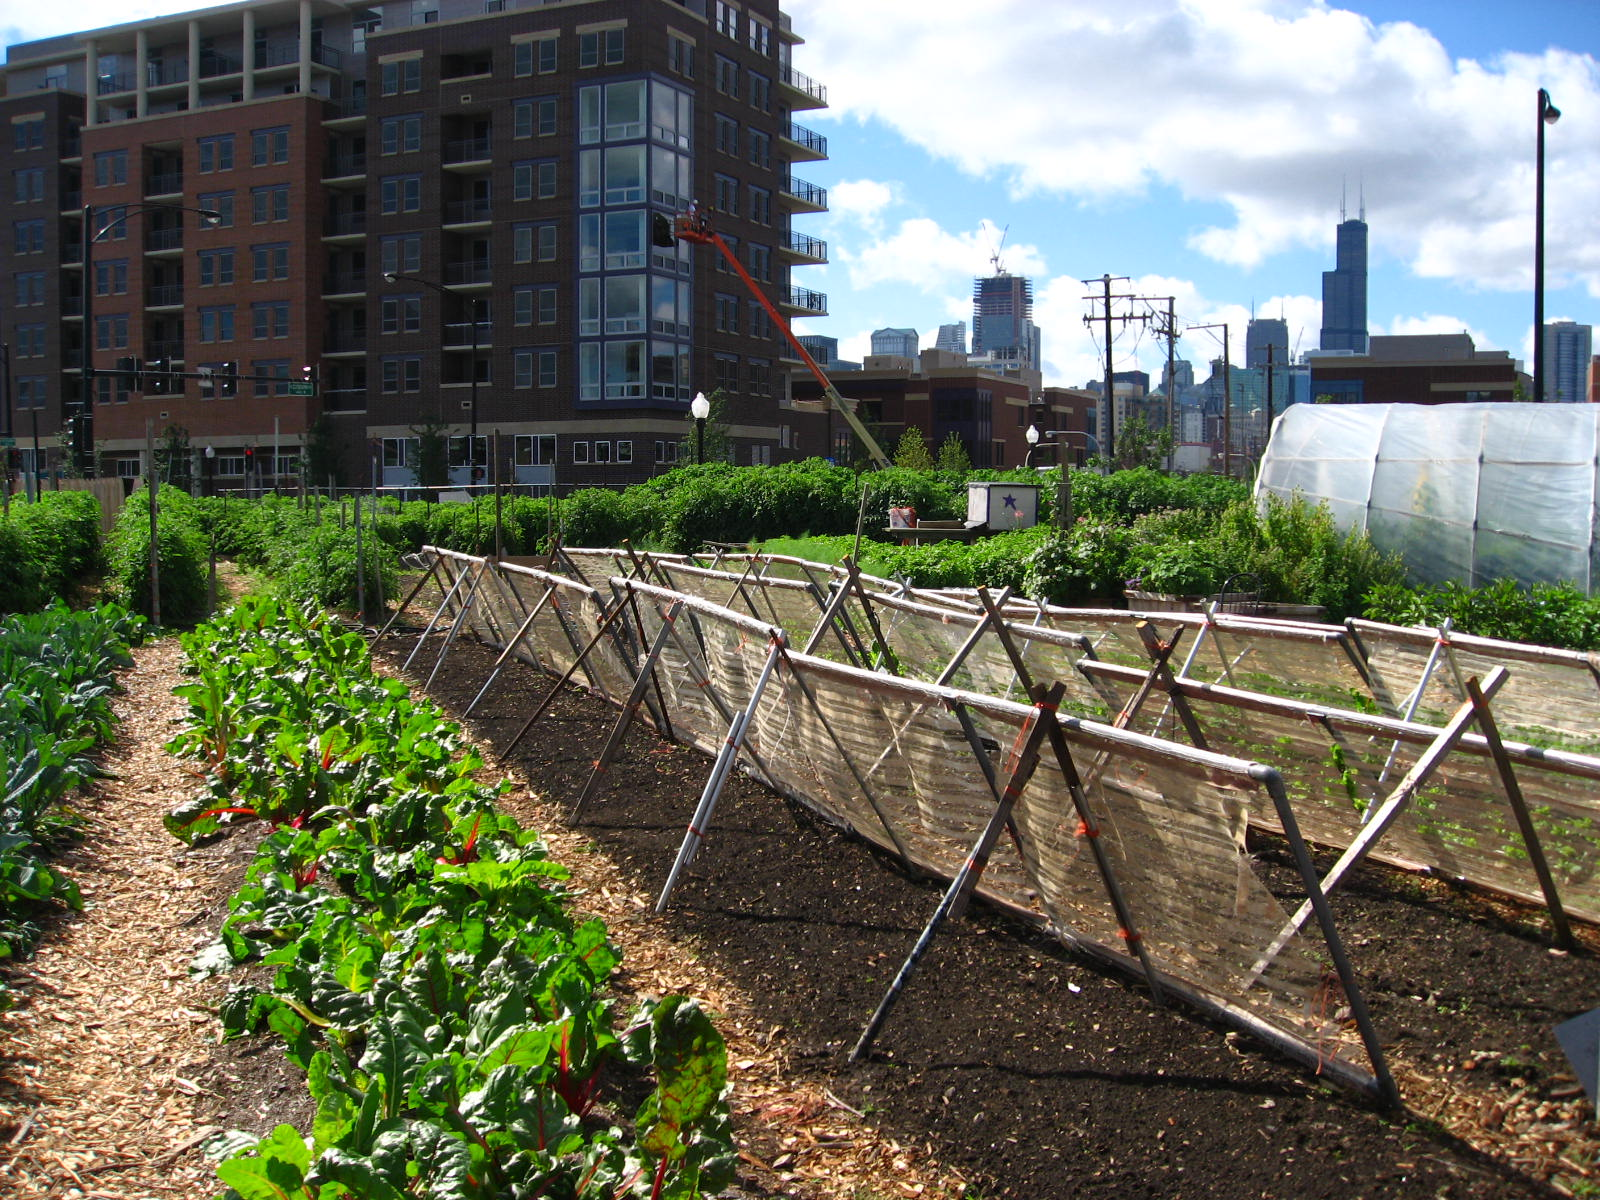 https://i1.wp.com/upload.wikimedia.org/wikipedia/commons/3/3d/New_crops-Chicago_urban_farm.jpg